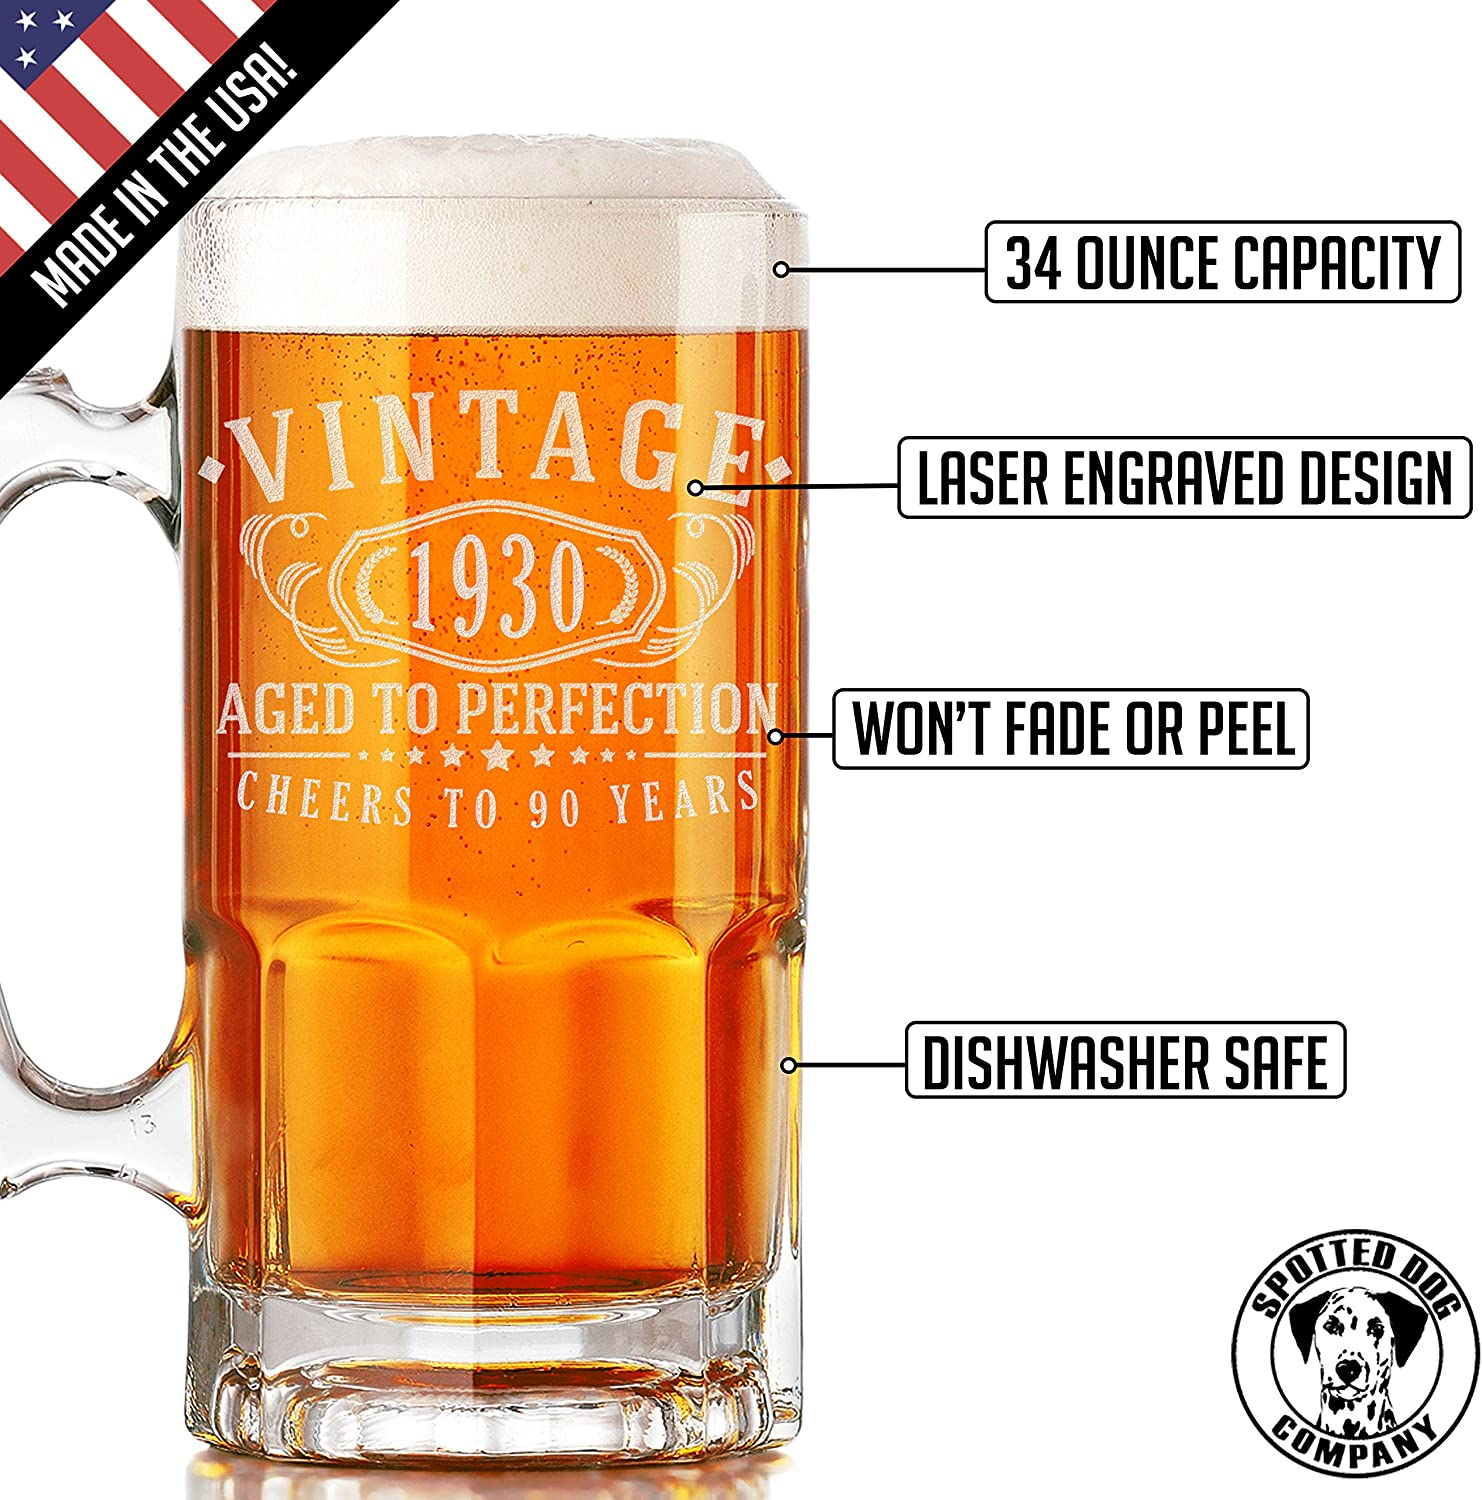 90 years old gifts Vintage 1930 Etched 34oz Glass Beer Mug 90th Birthday Aged to Perfection